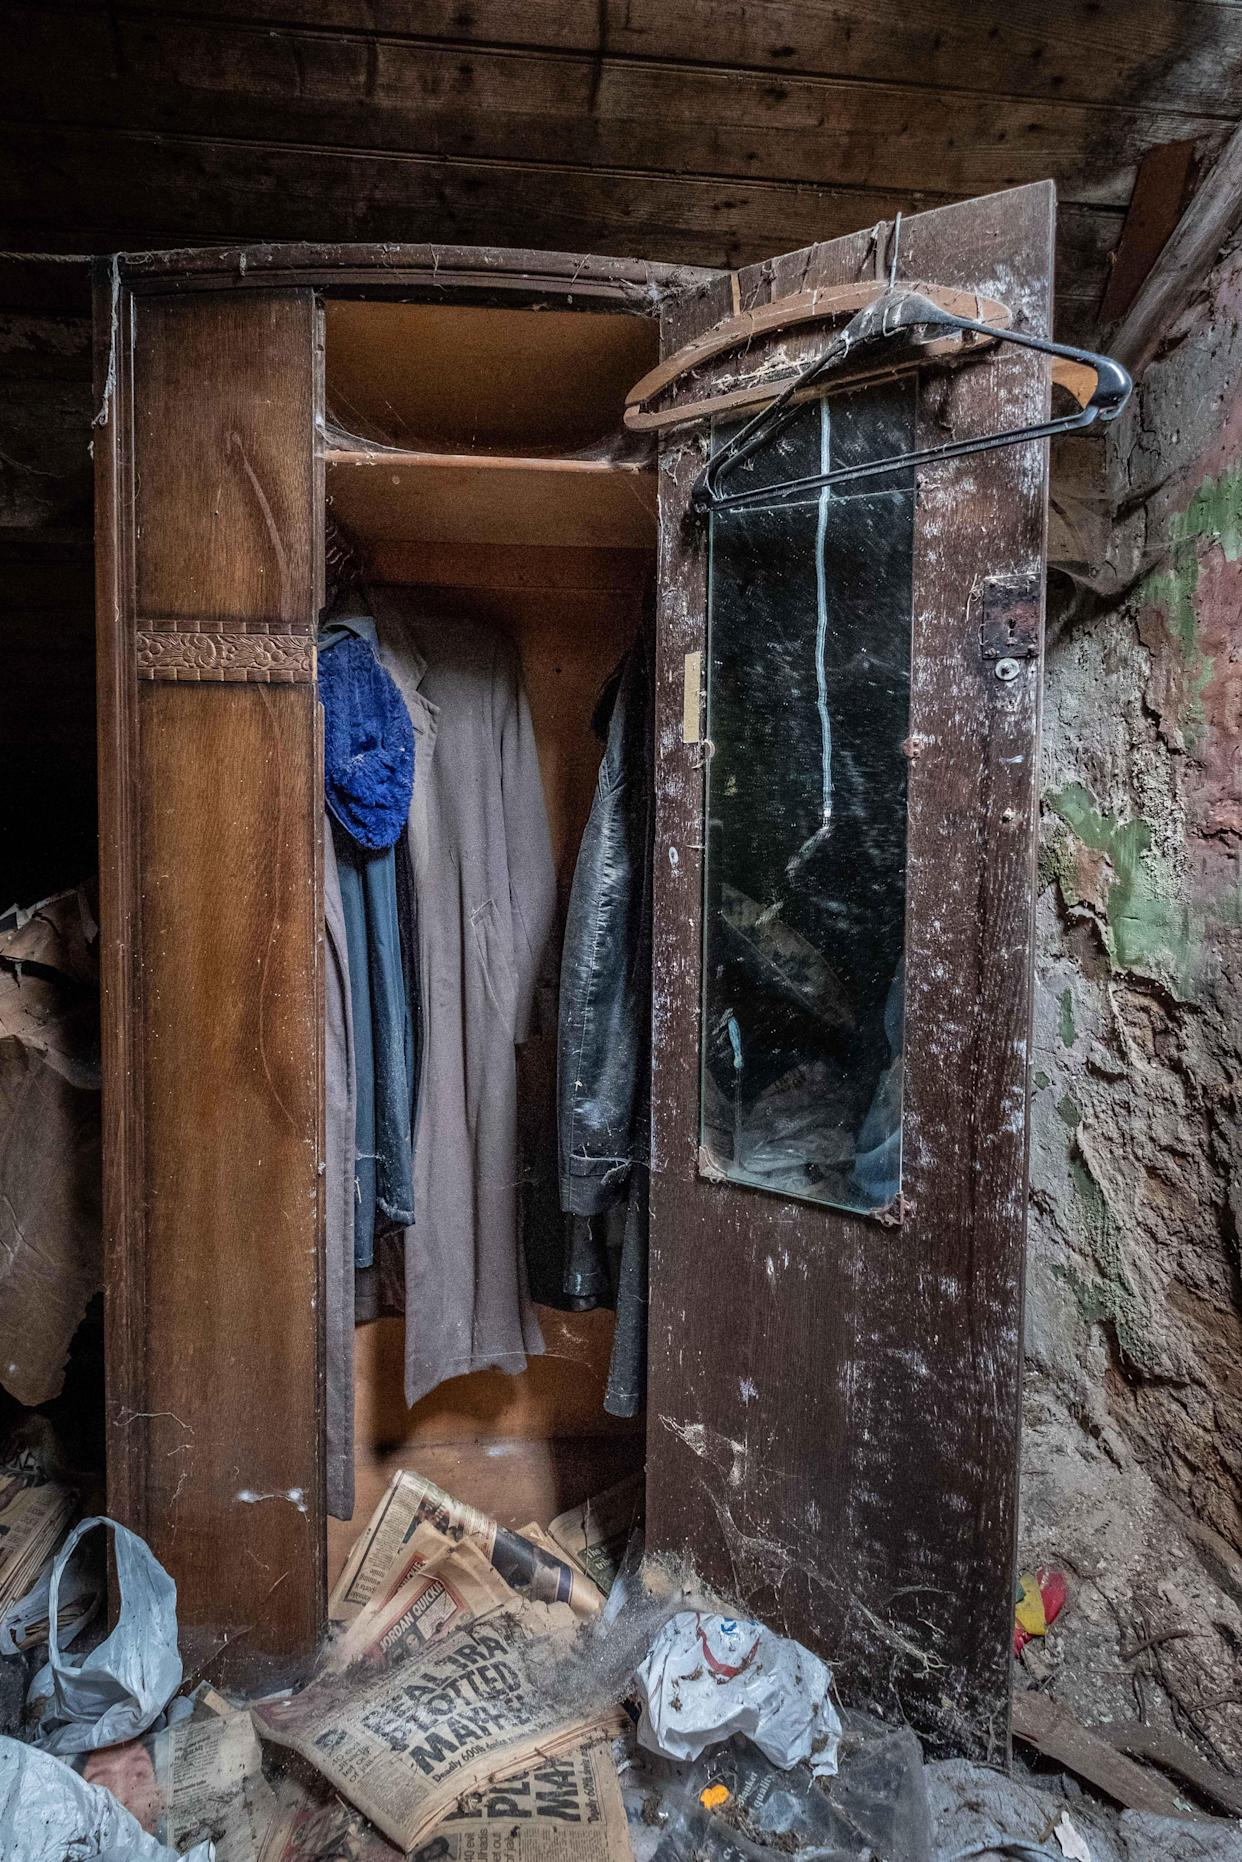 Clothes left in a wardrobe inside an abandoned home in Northern Ireland, March 12, 2018. (Photo: Unseen Decay/Mercury Press/Caters News)